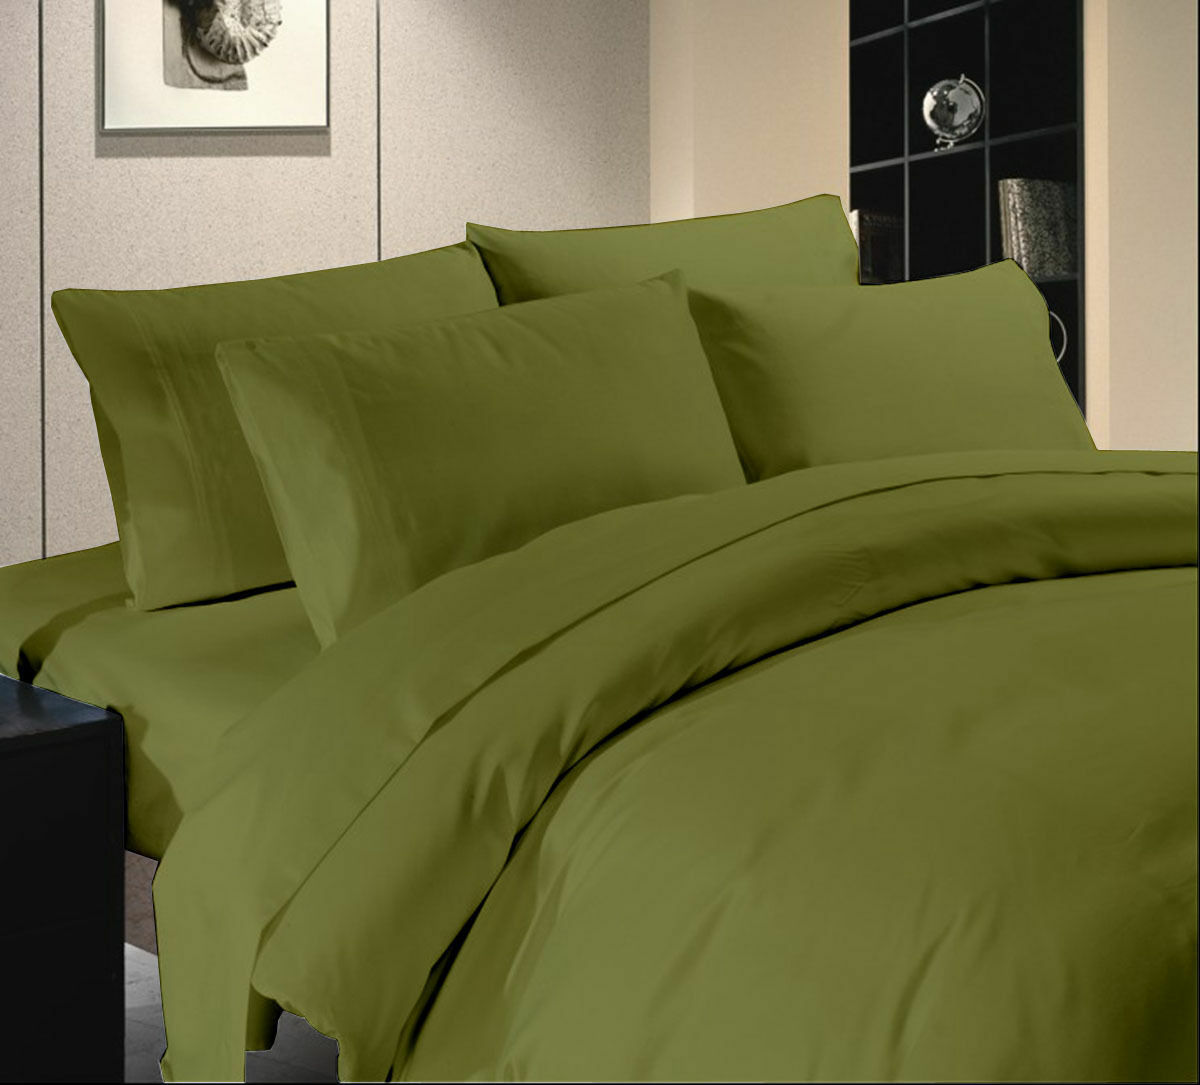 Premium Bedding Collection 1000 TC Egypt Cotton All Größes Olive   Moss Solid